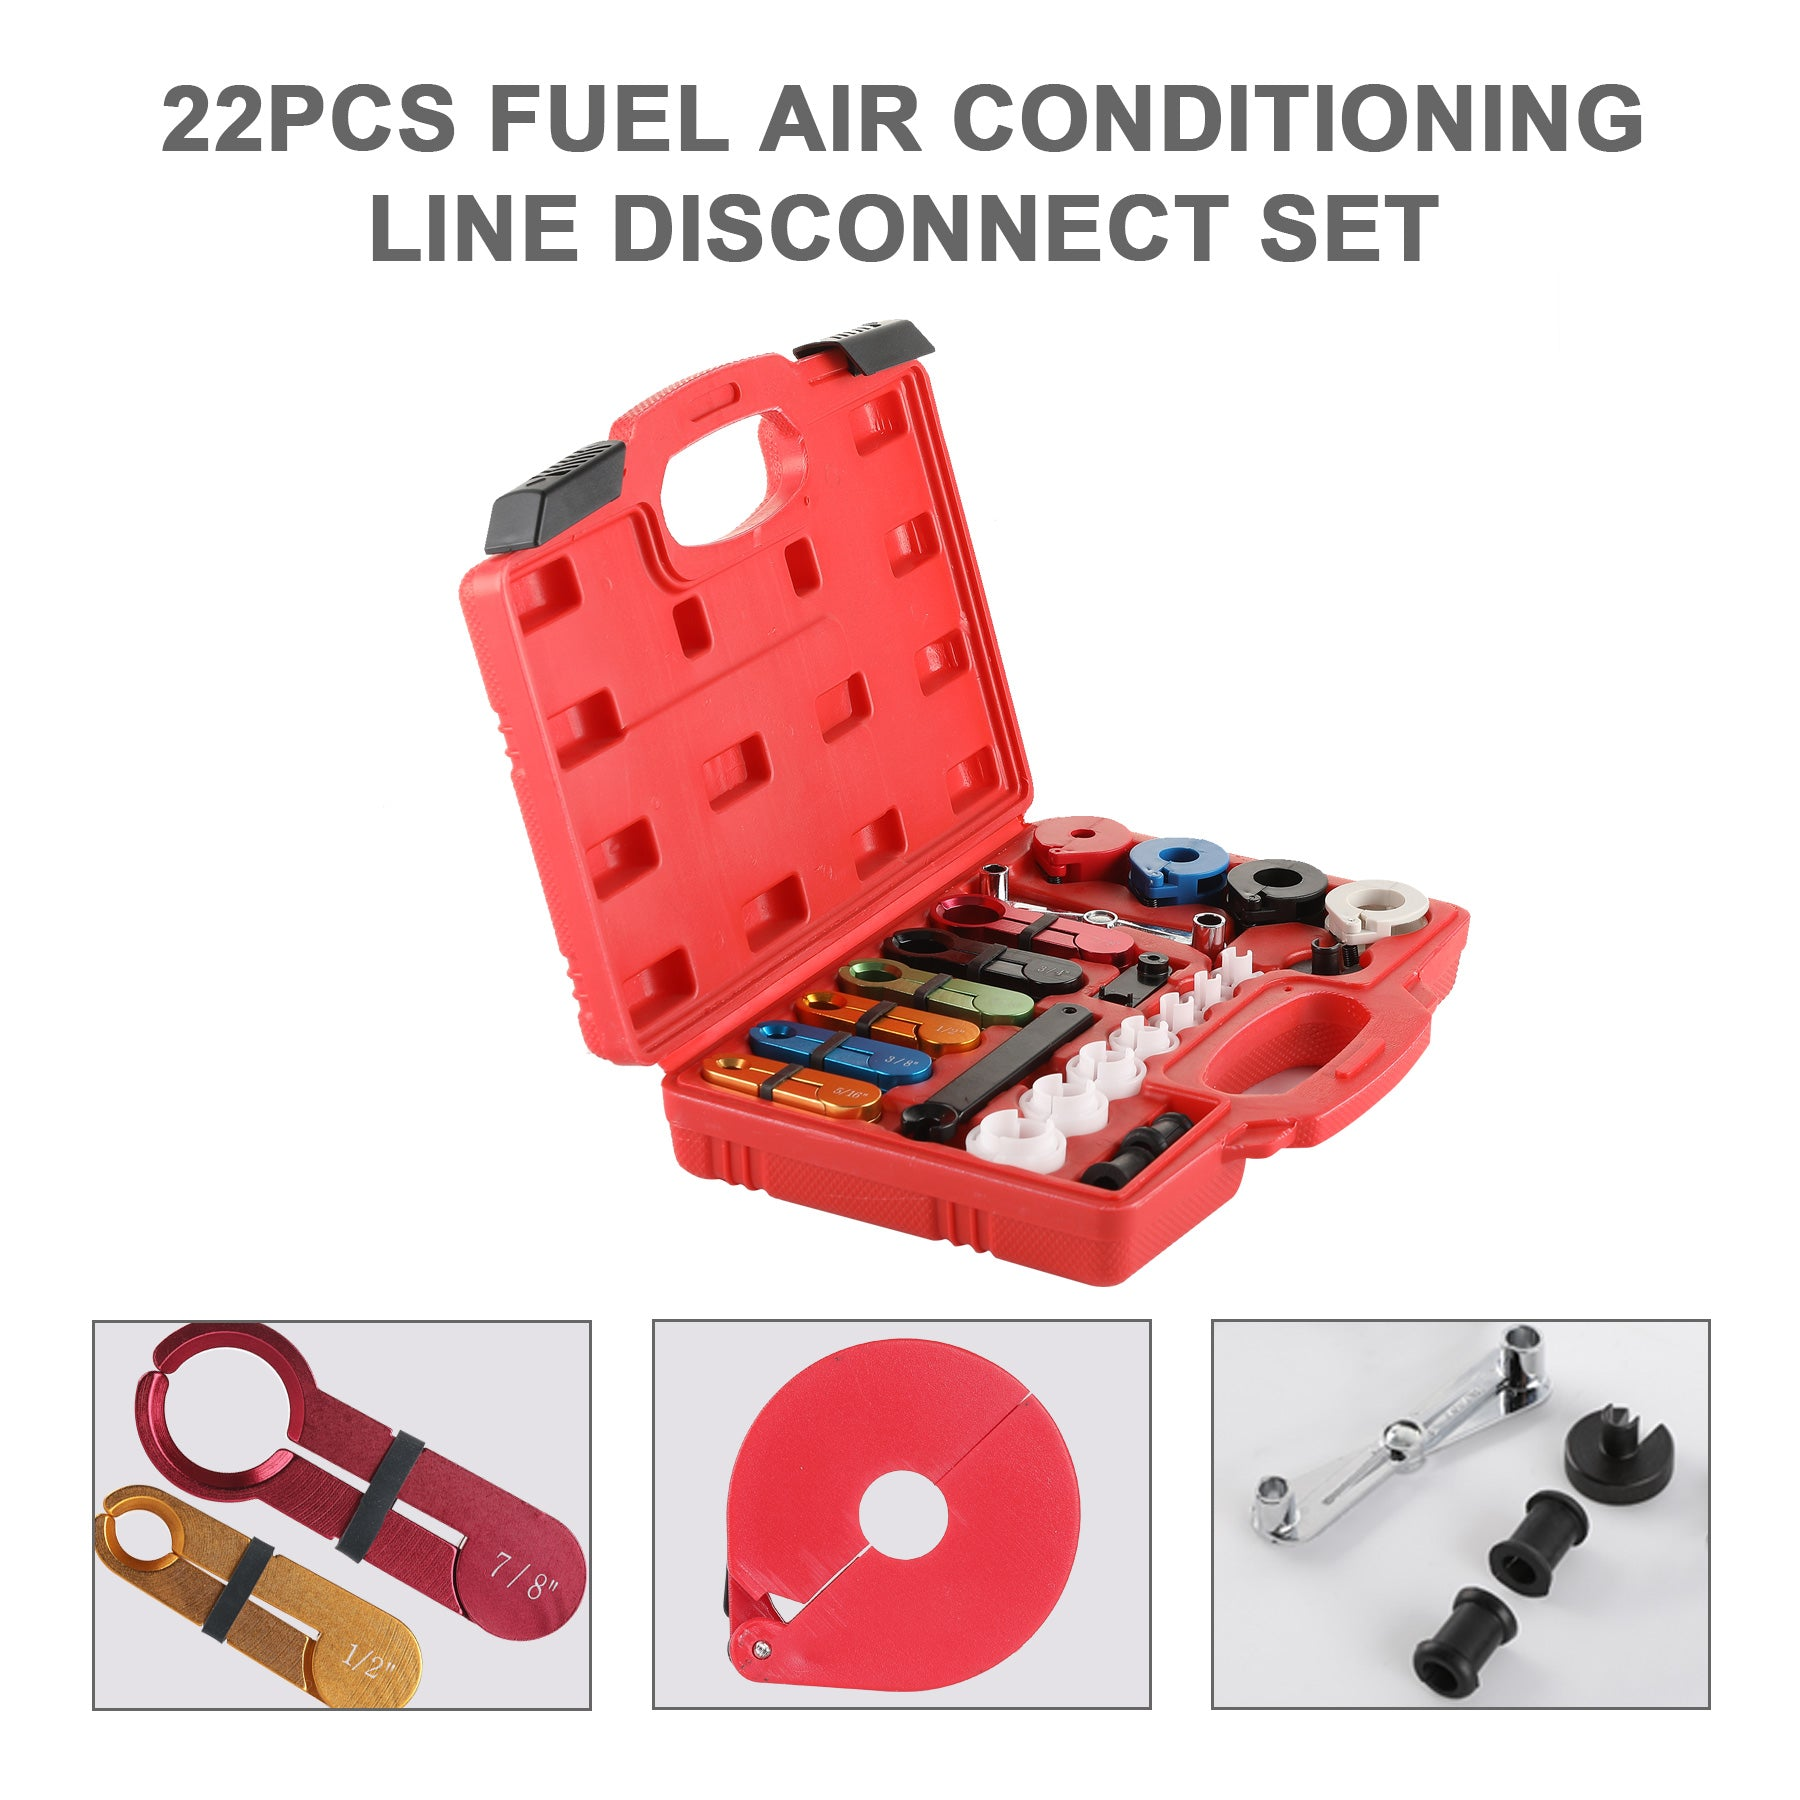 Fuel Air Conditioning Line Disconnect Set